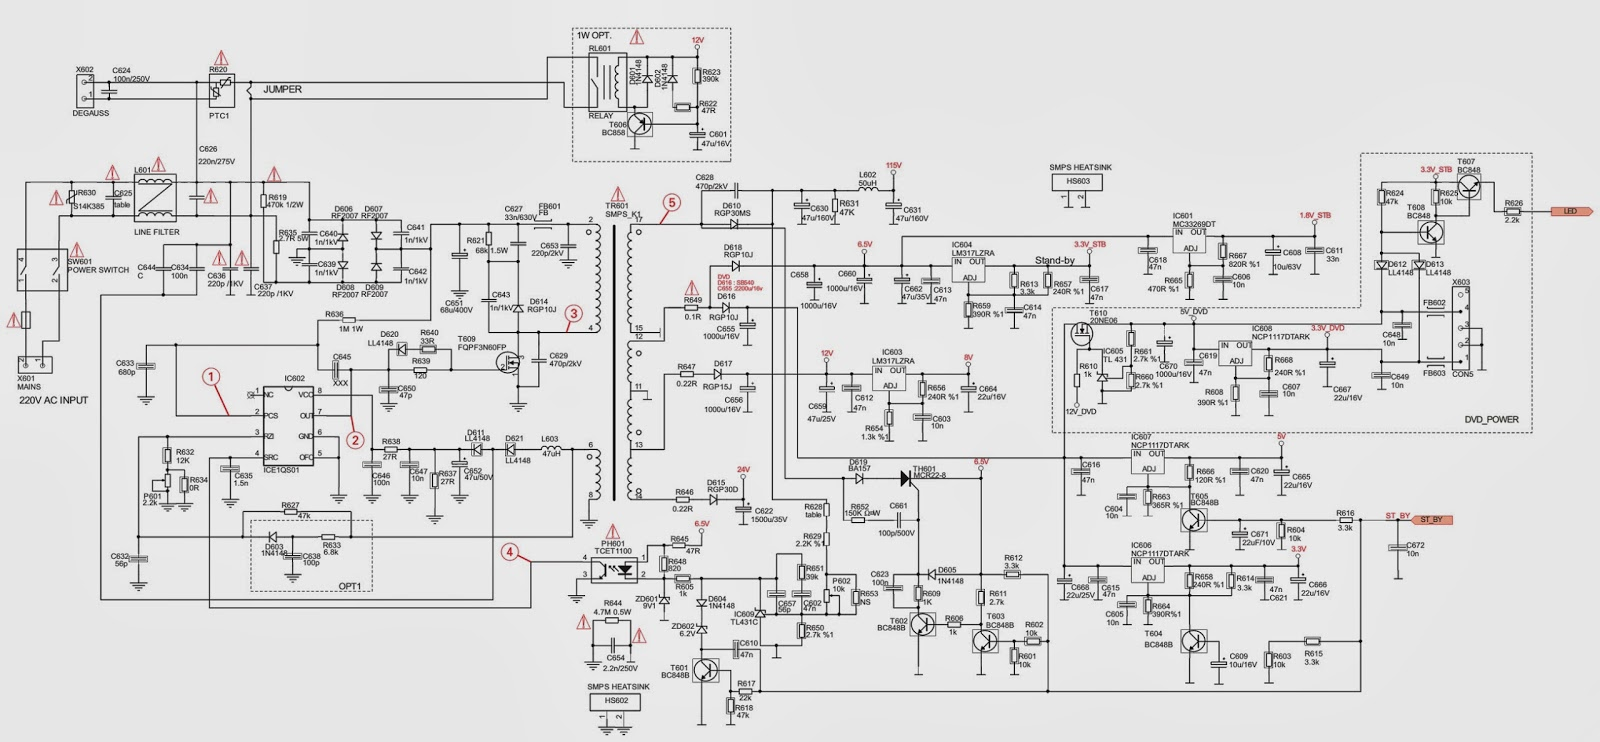 small resolution of smps power supply circuit diagram electric mx tl 6000 power supply smps schematic circuit digram electro help